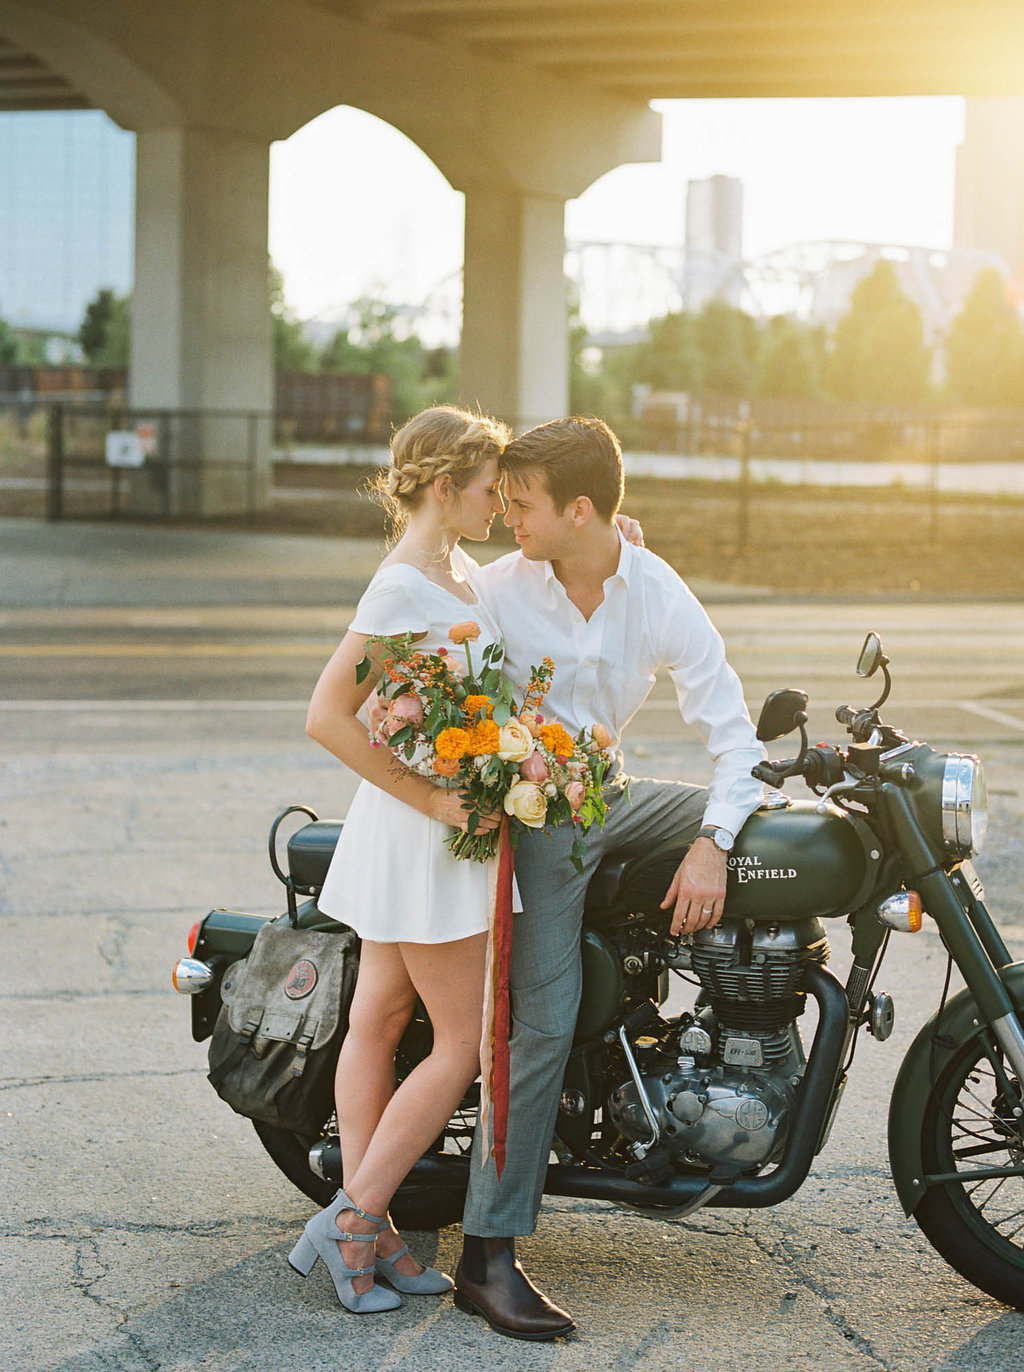 Retro elopement wedding inspiration with a motorcycle and colorful flowers // Nashville Wedding Florist